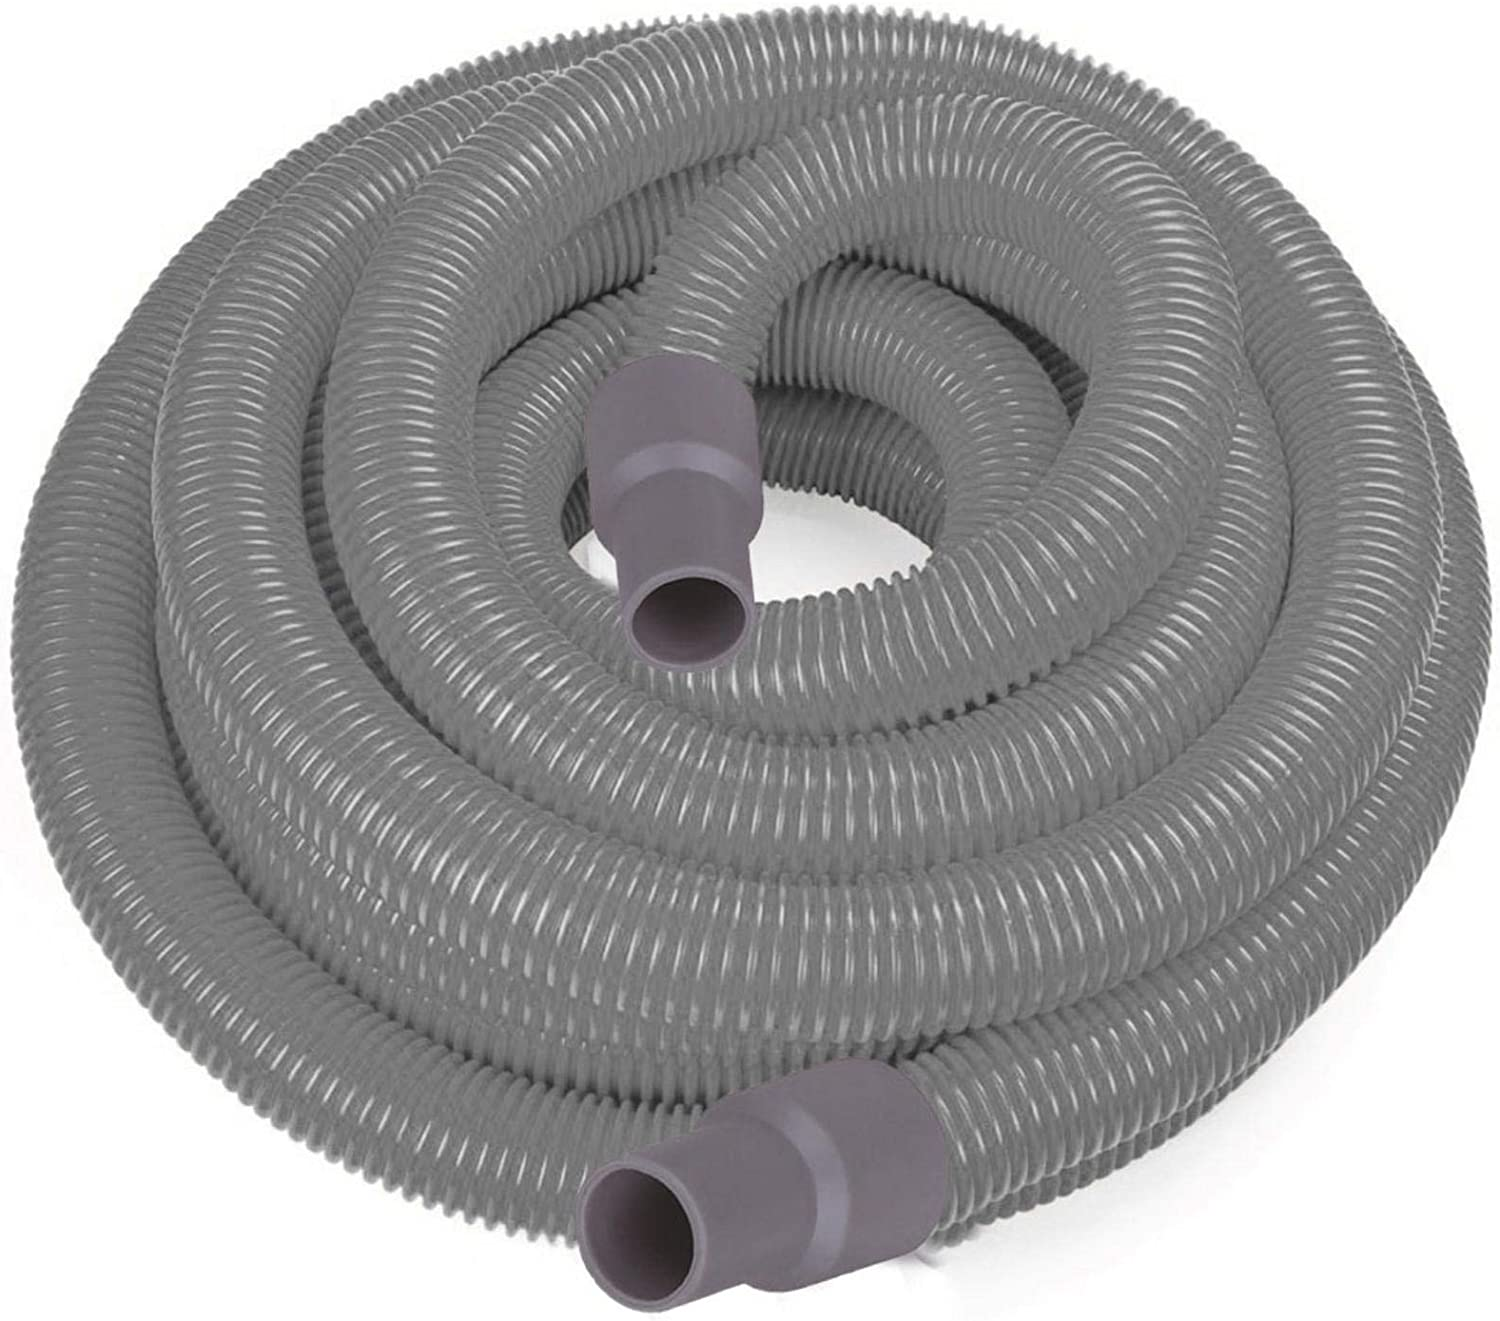 Swimming Pool Vacuum Hose In-Ground Fashionable Heavy With Import